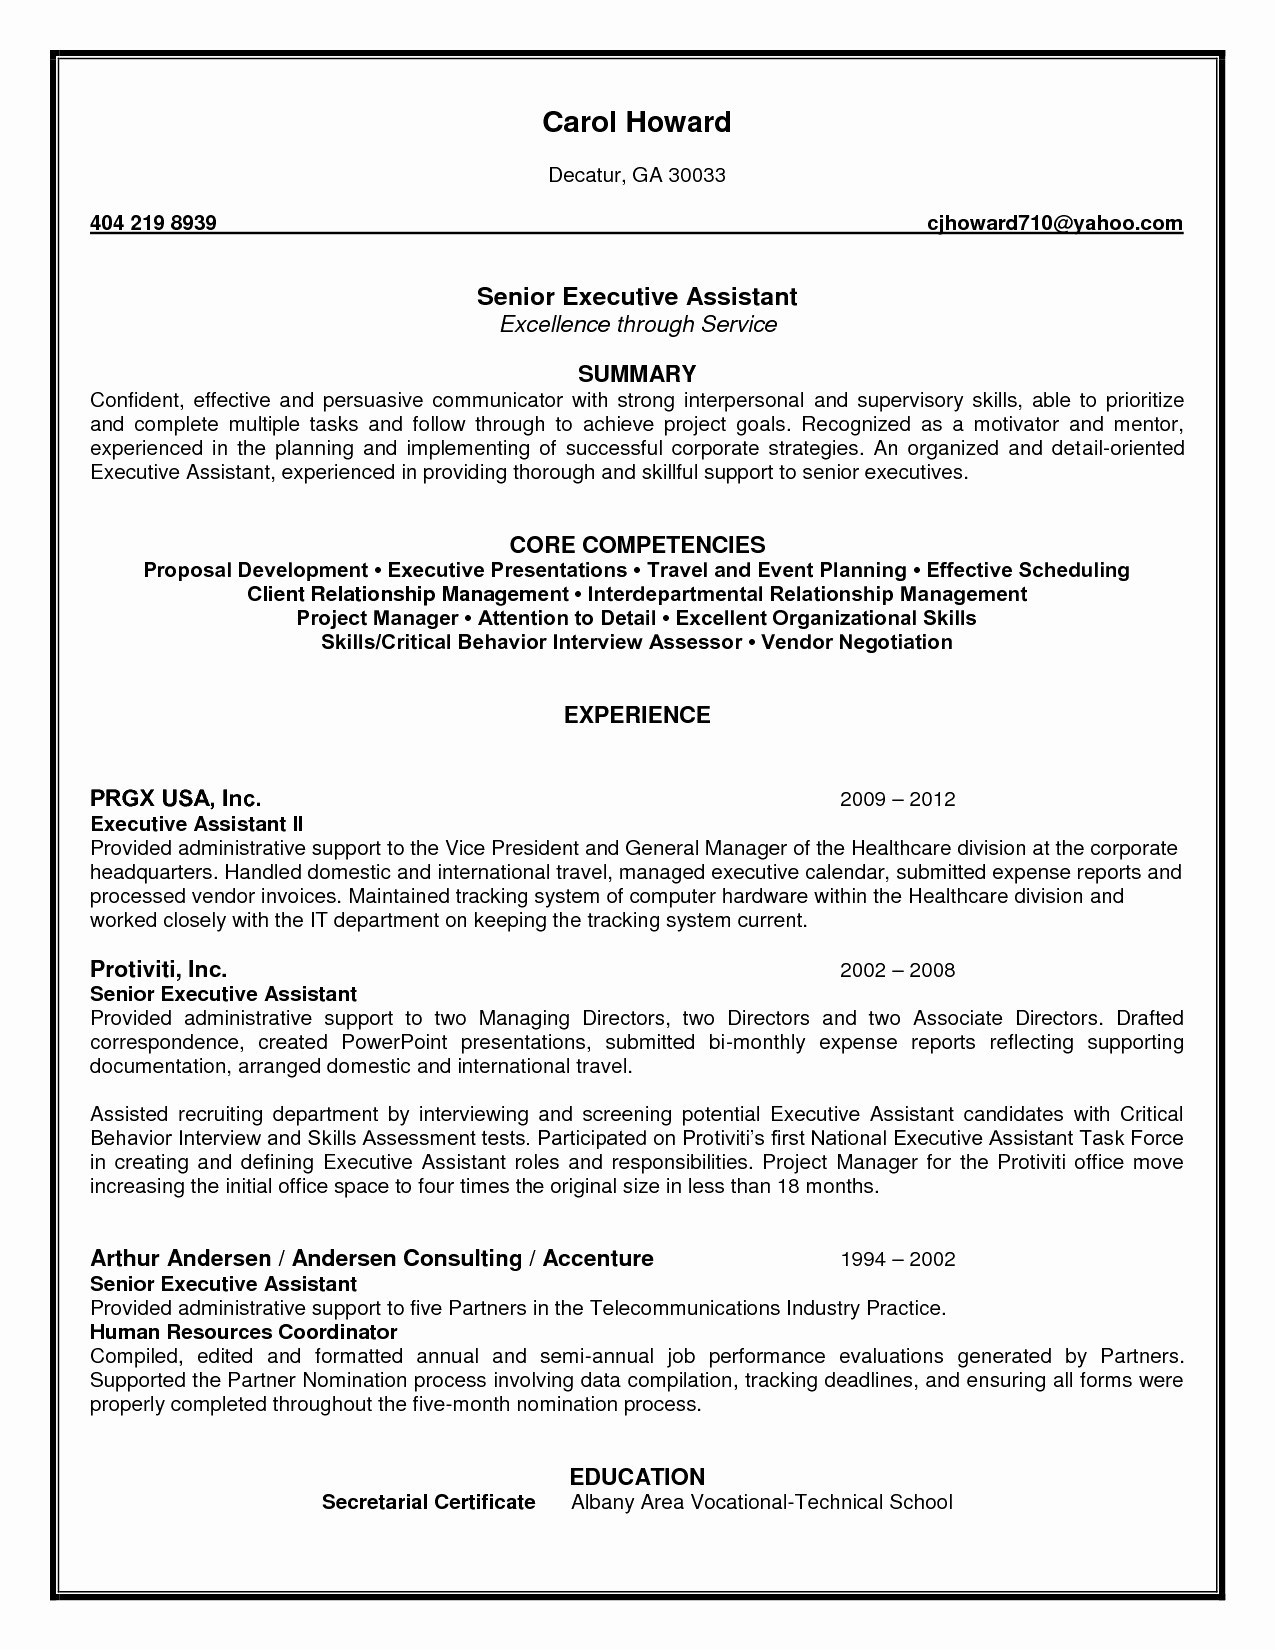 Performance Resume Templates - Executive assistant Resumes Unique Resume Template Executive